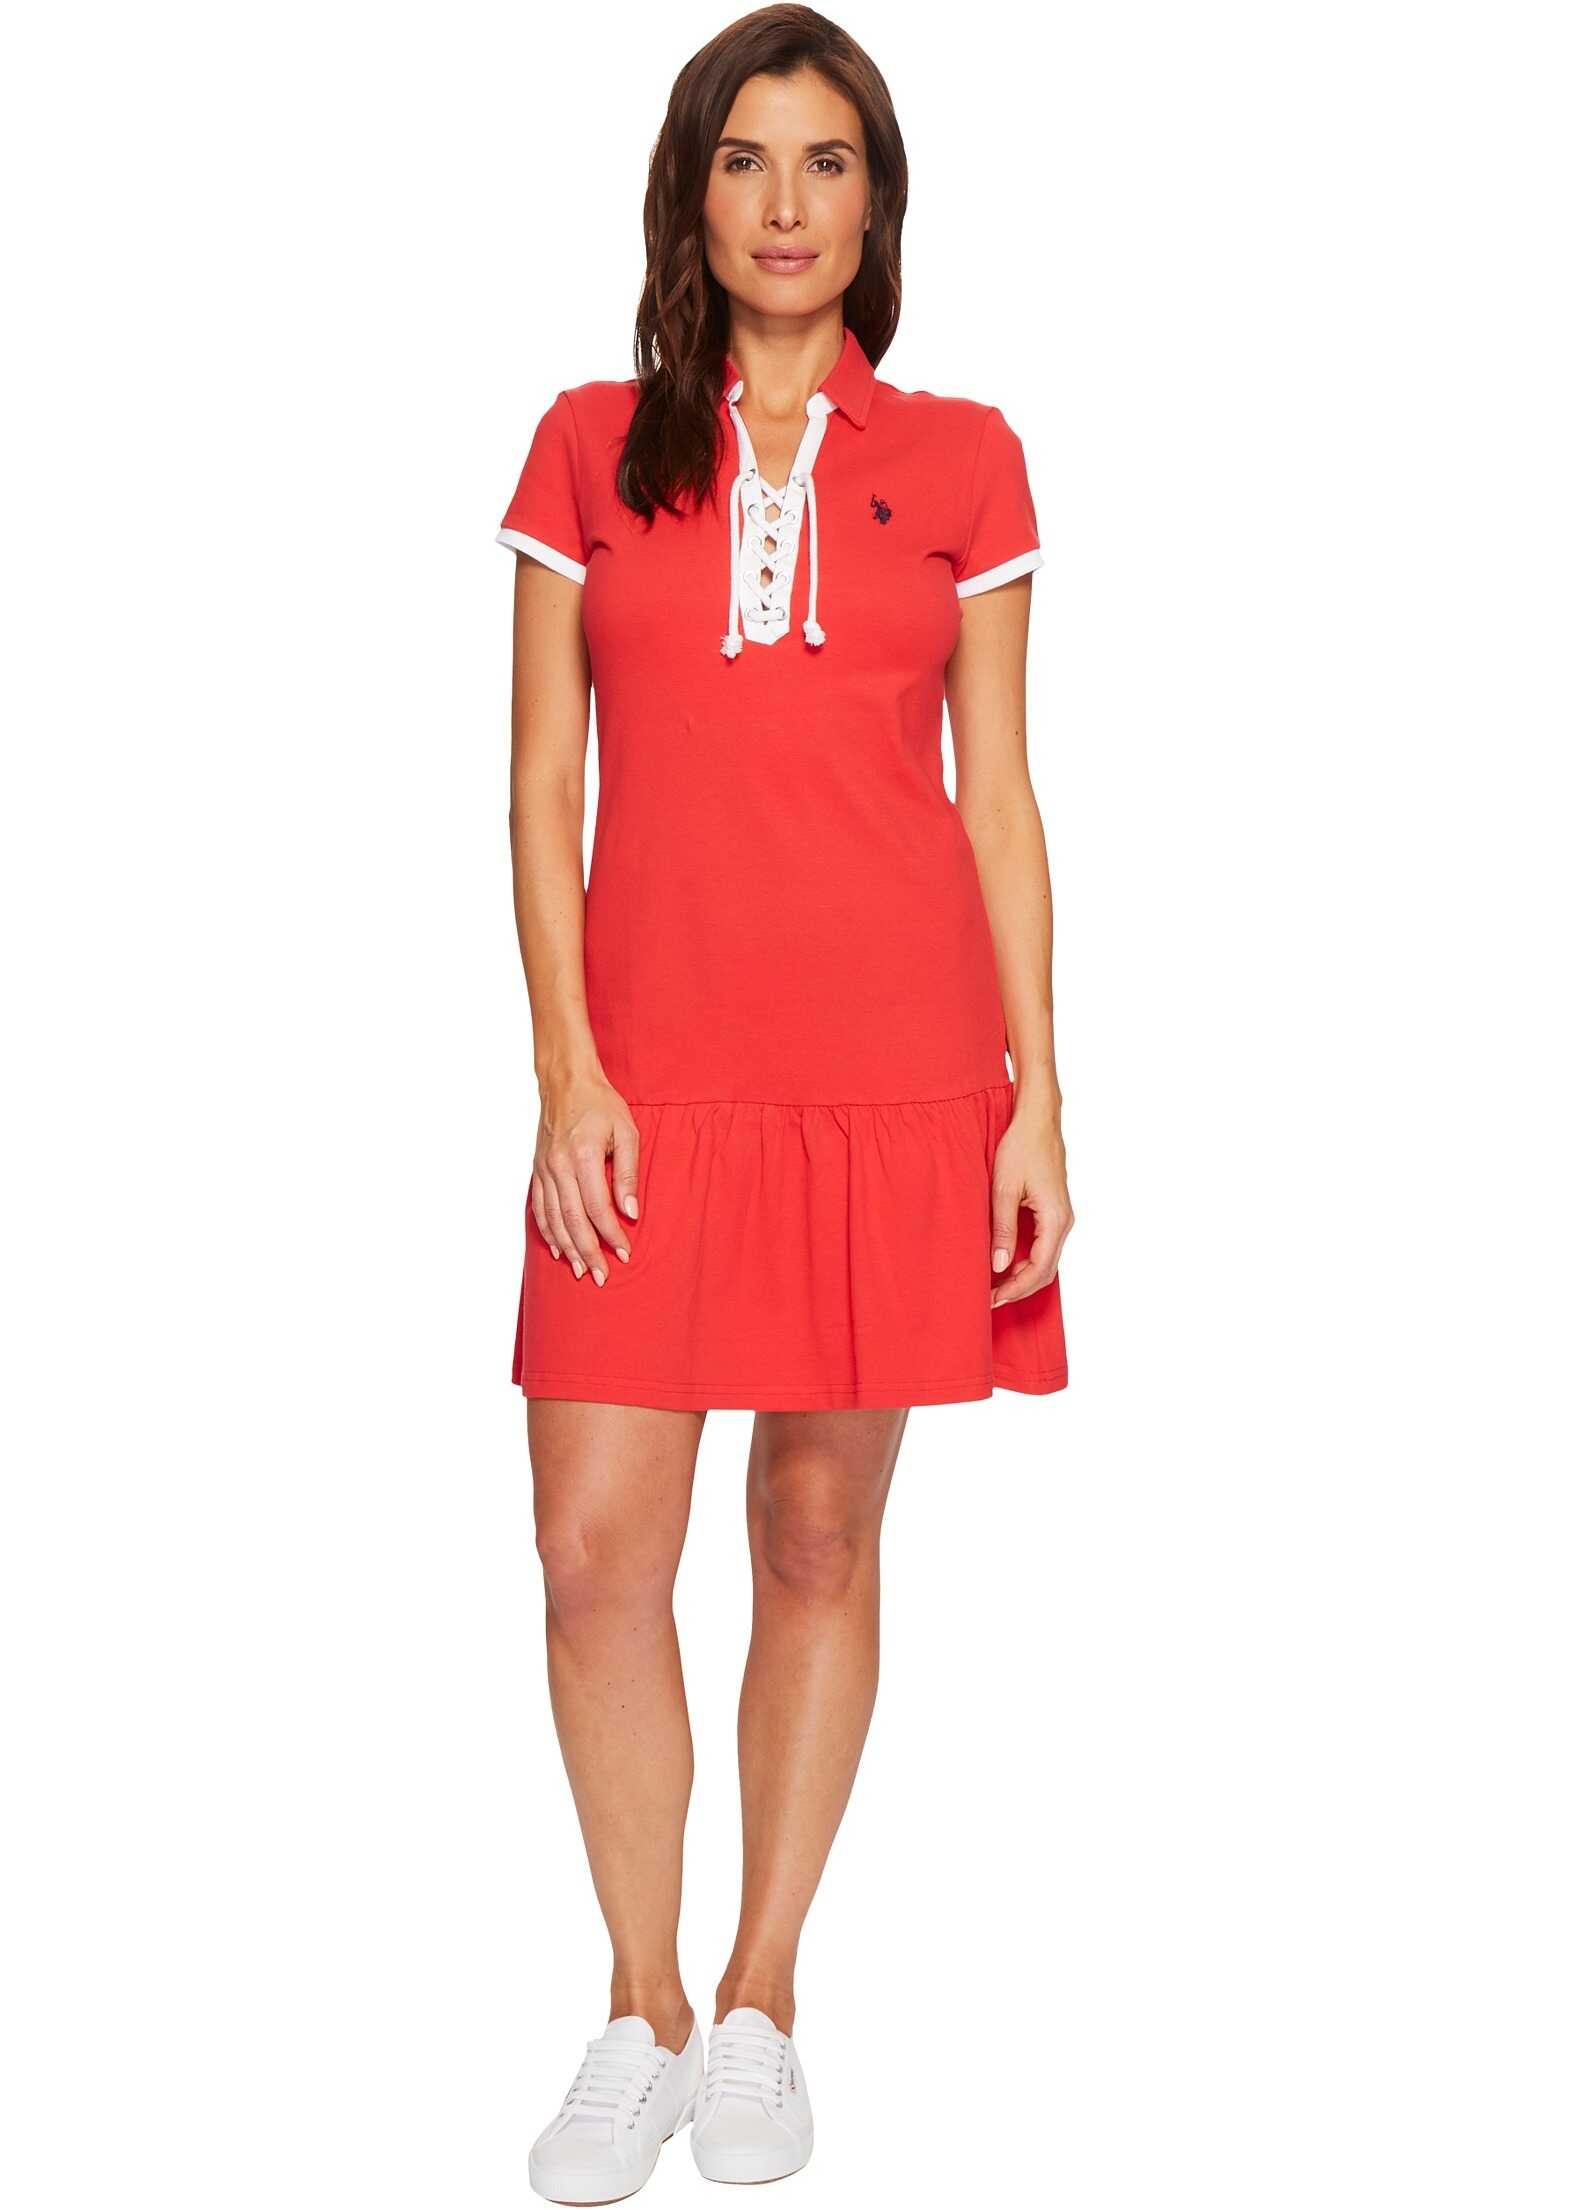 U.S. POLO ASSN. Birdeye Pique Polo Dress Lolipop